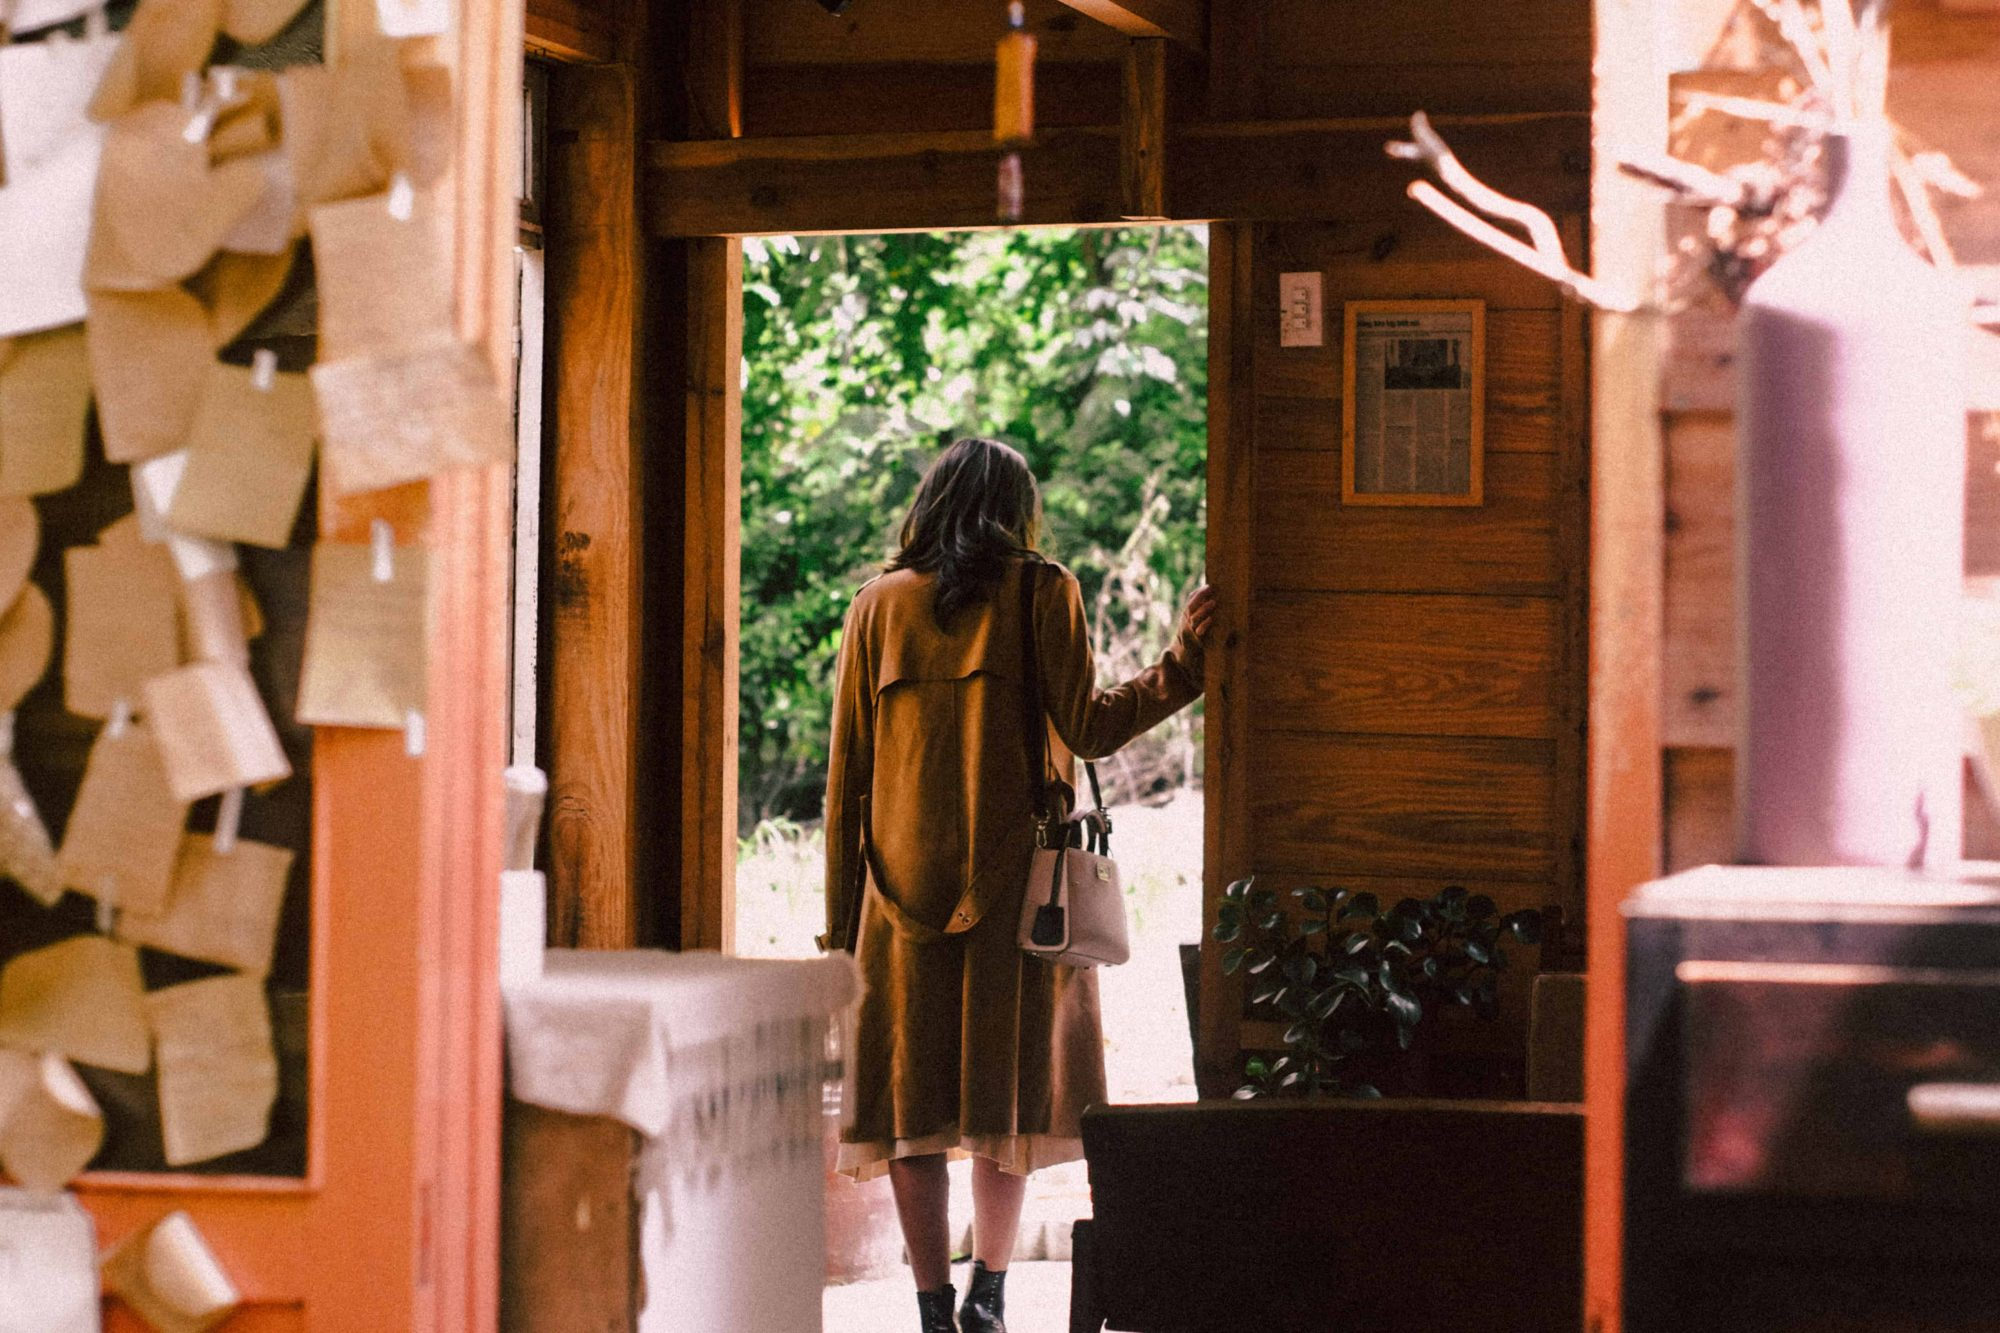 woman standing near open door about to step outside stockpack pexels scaled